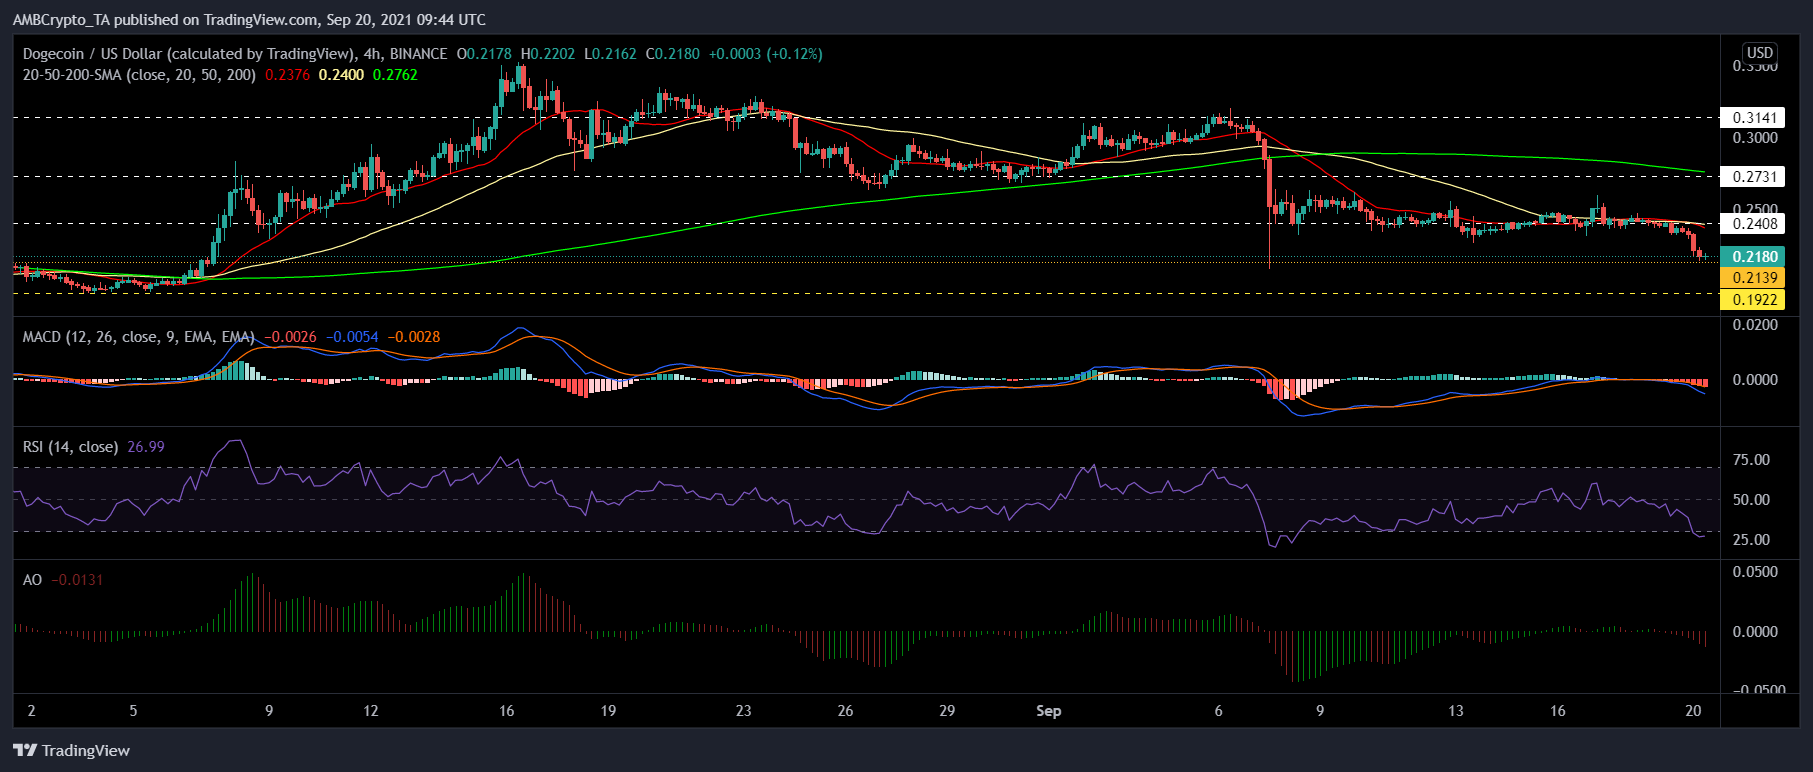 Ethereum Classic, COSMOS and Dogecoin Price Analysis: 20 September